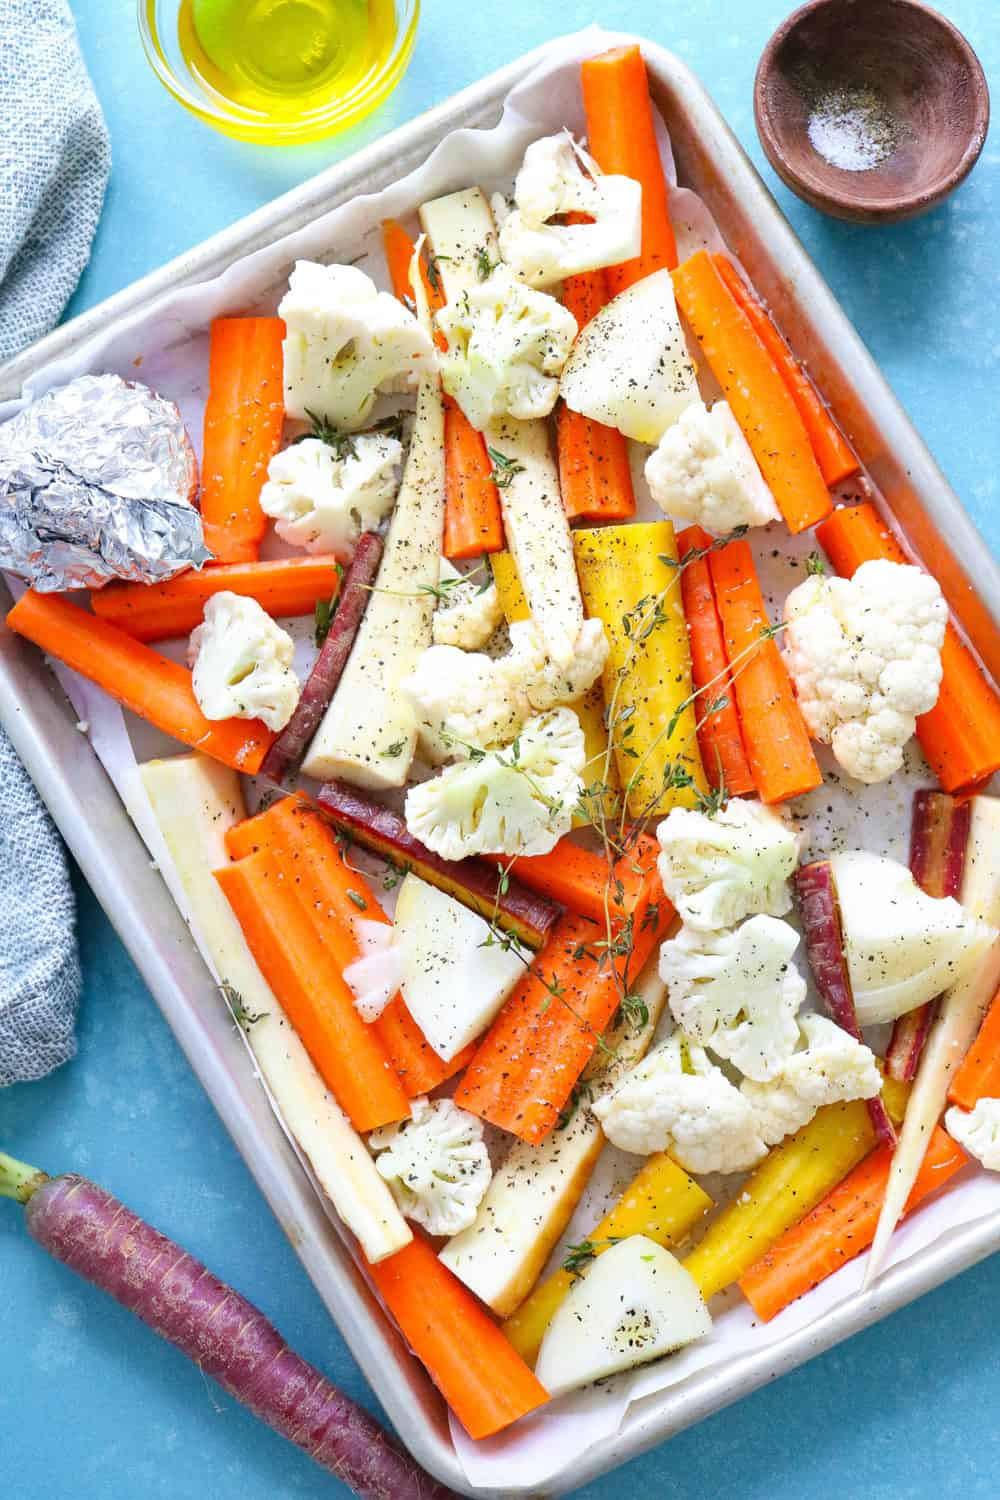 l roasted root veggies on a baking sheet with garlic and thyme